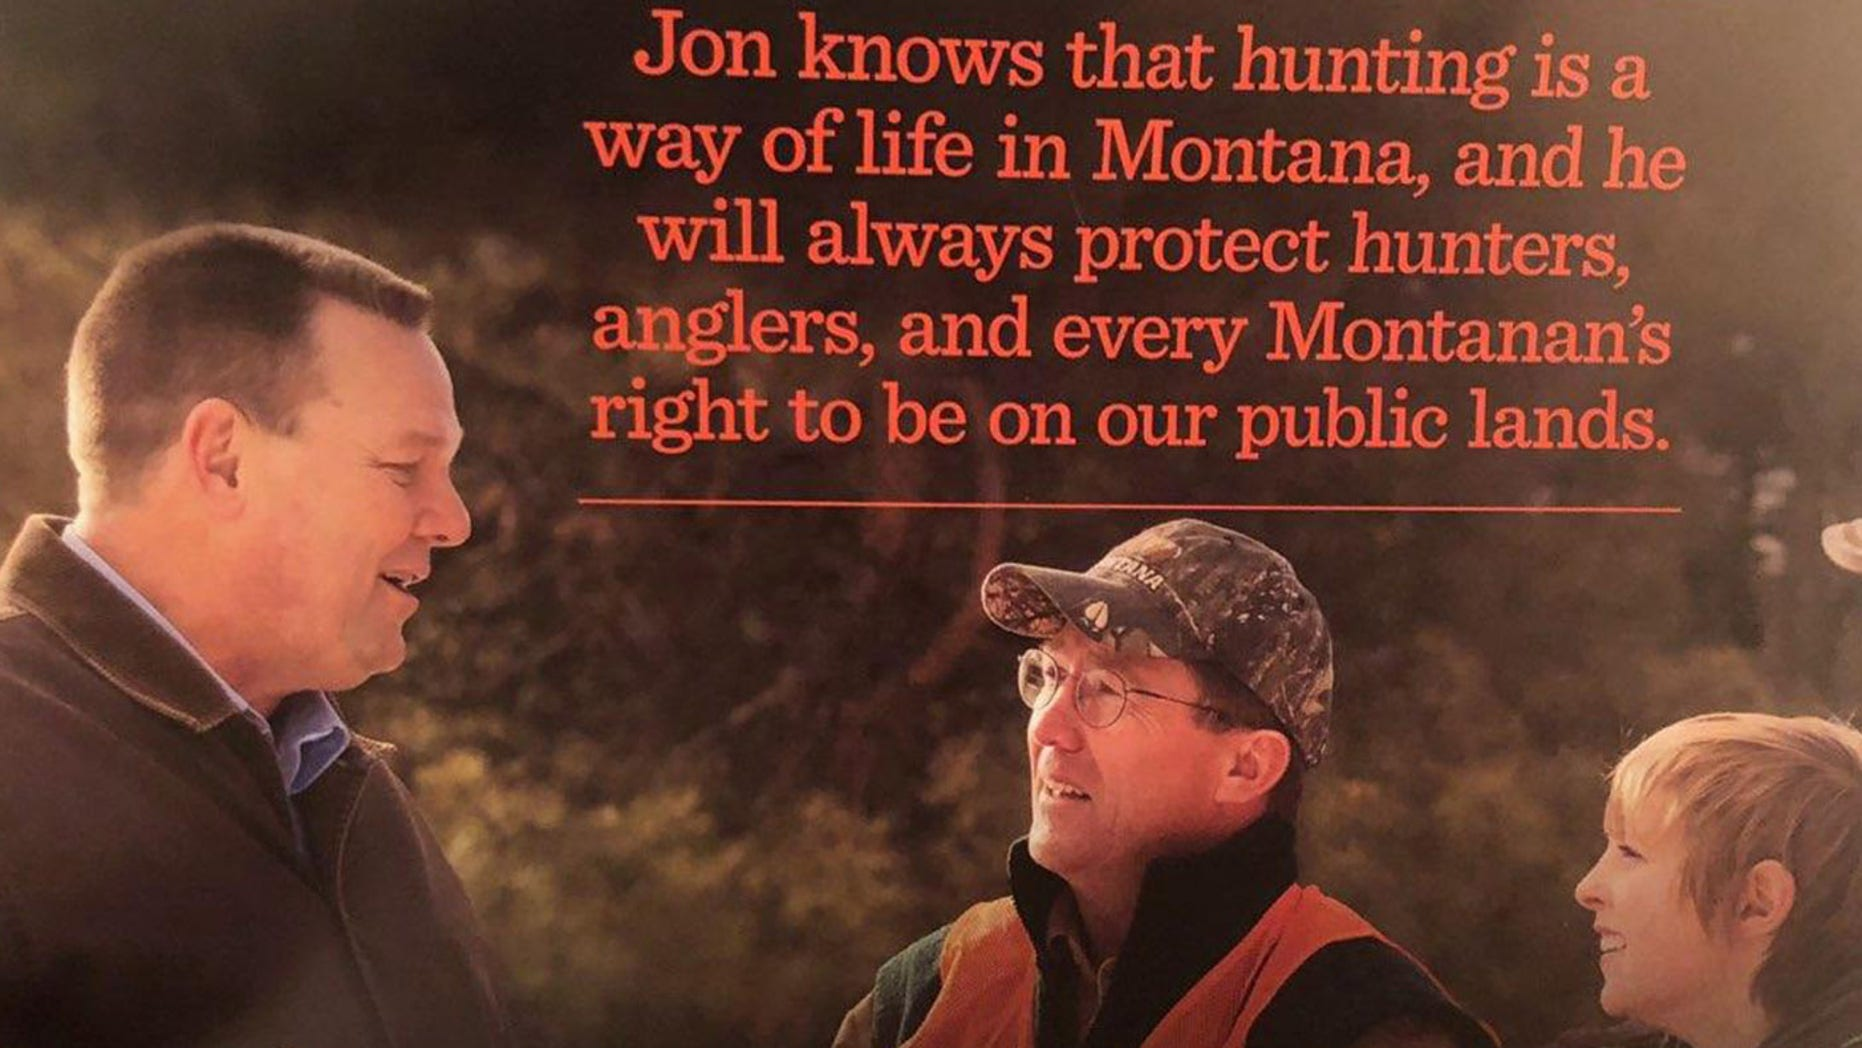 Montana Sen. Jon Tester has campaigned as a hunting proponent, sending out mailers to voters that show him with his gun.